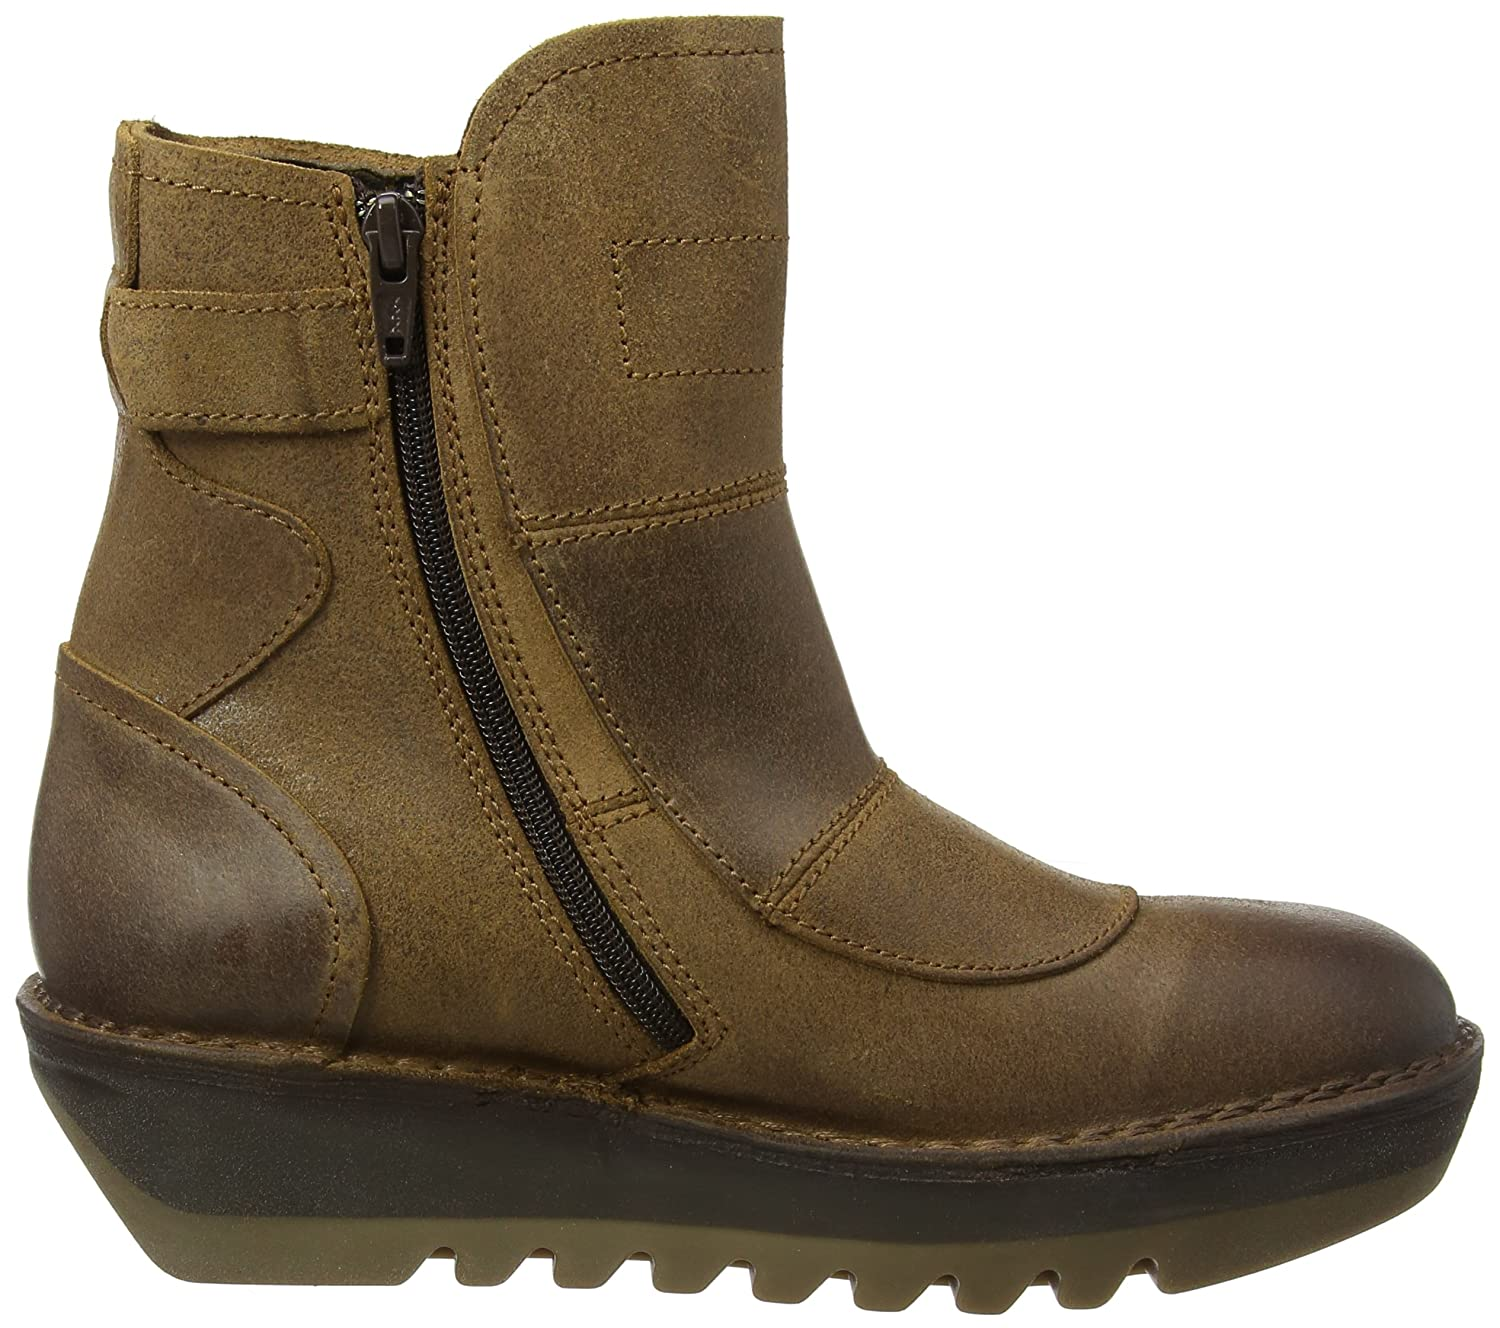 FLY FLY FLY London Damen Jafi924fly Biker Stiefel 204e78